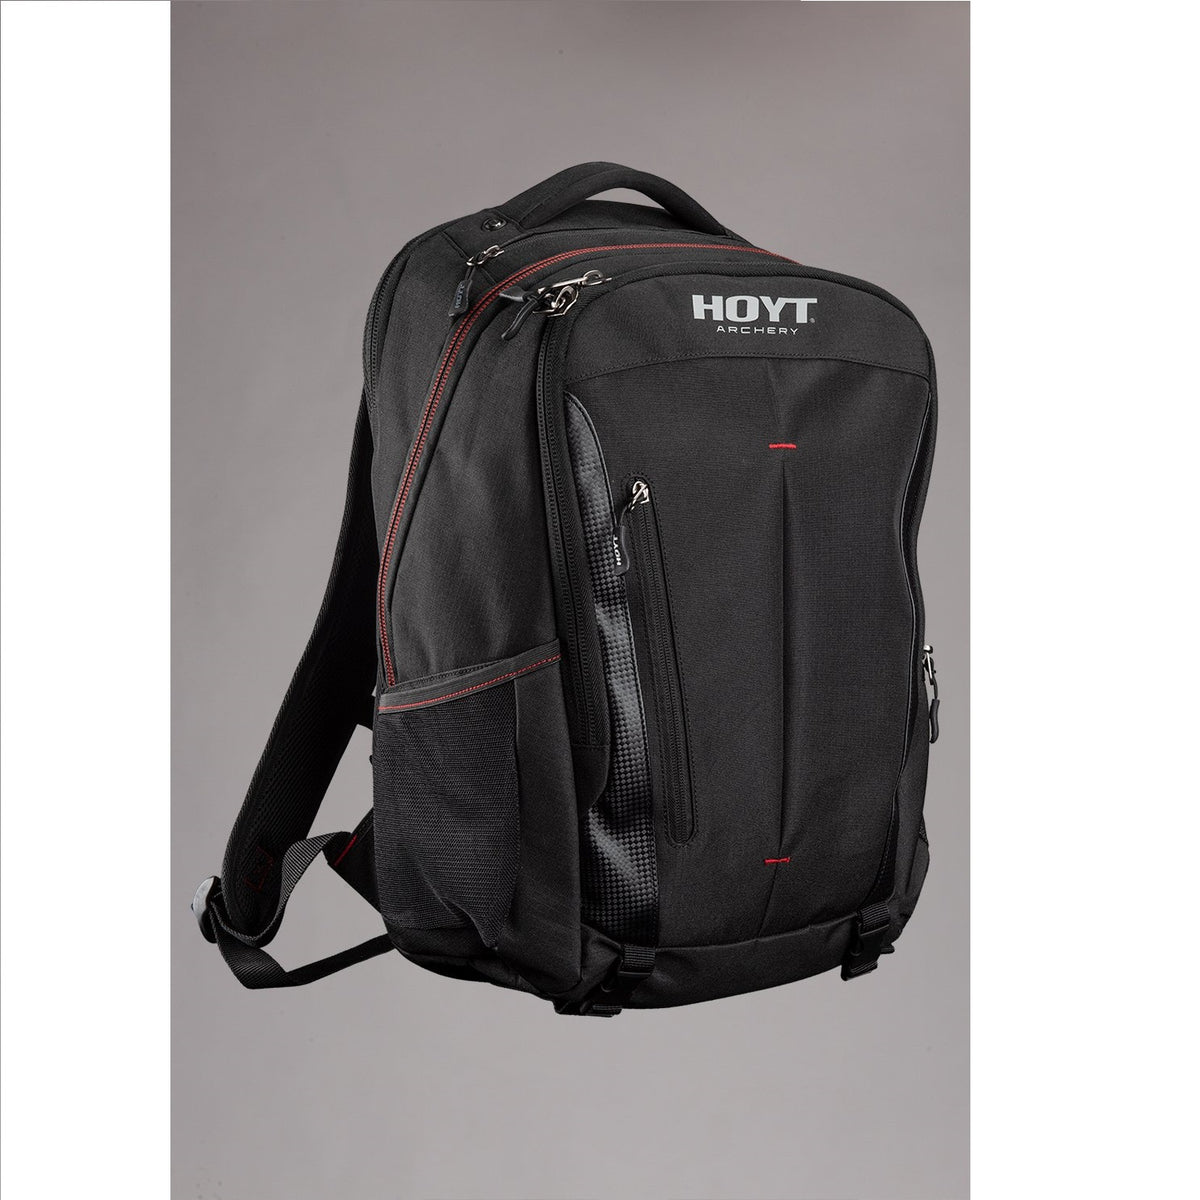 Hoyt Concourse Backpack